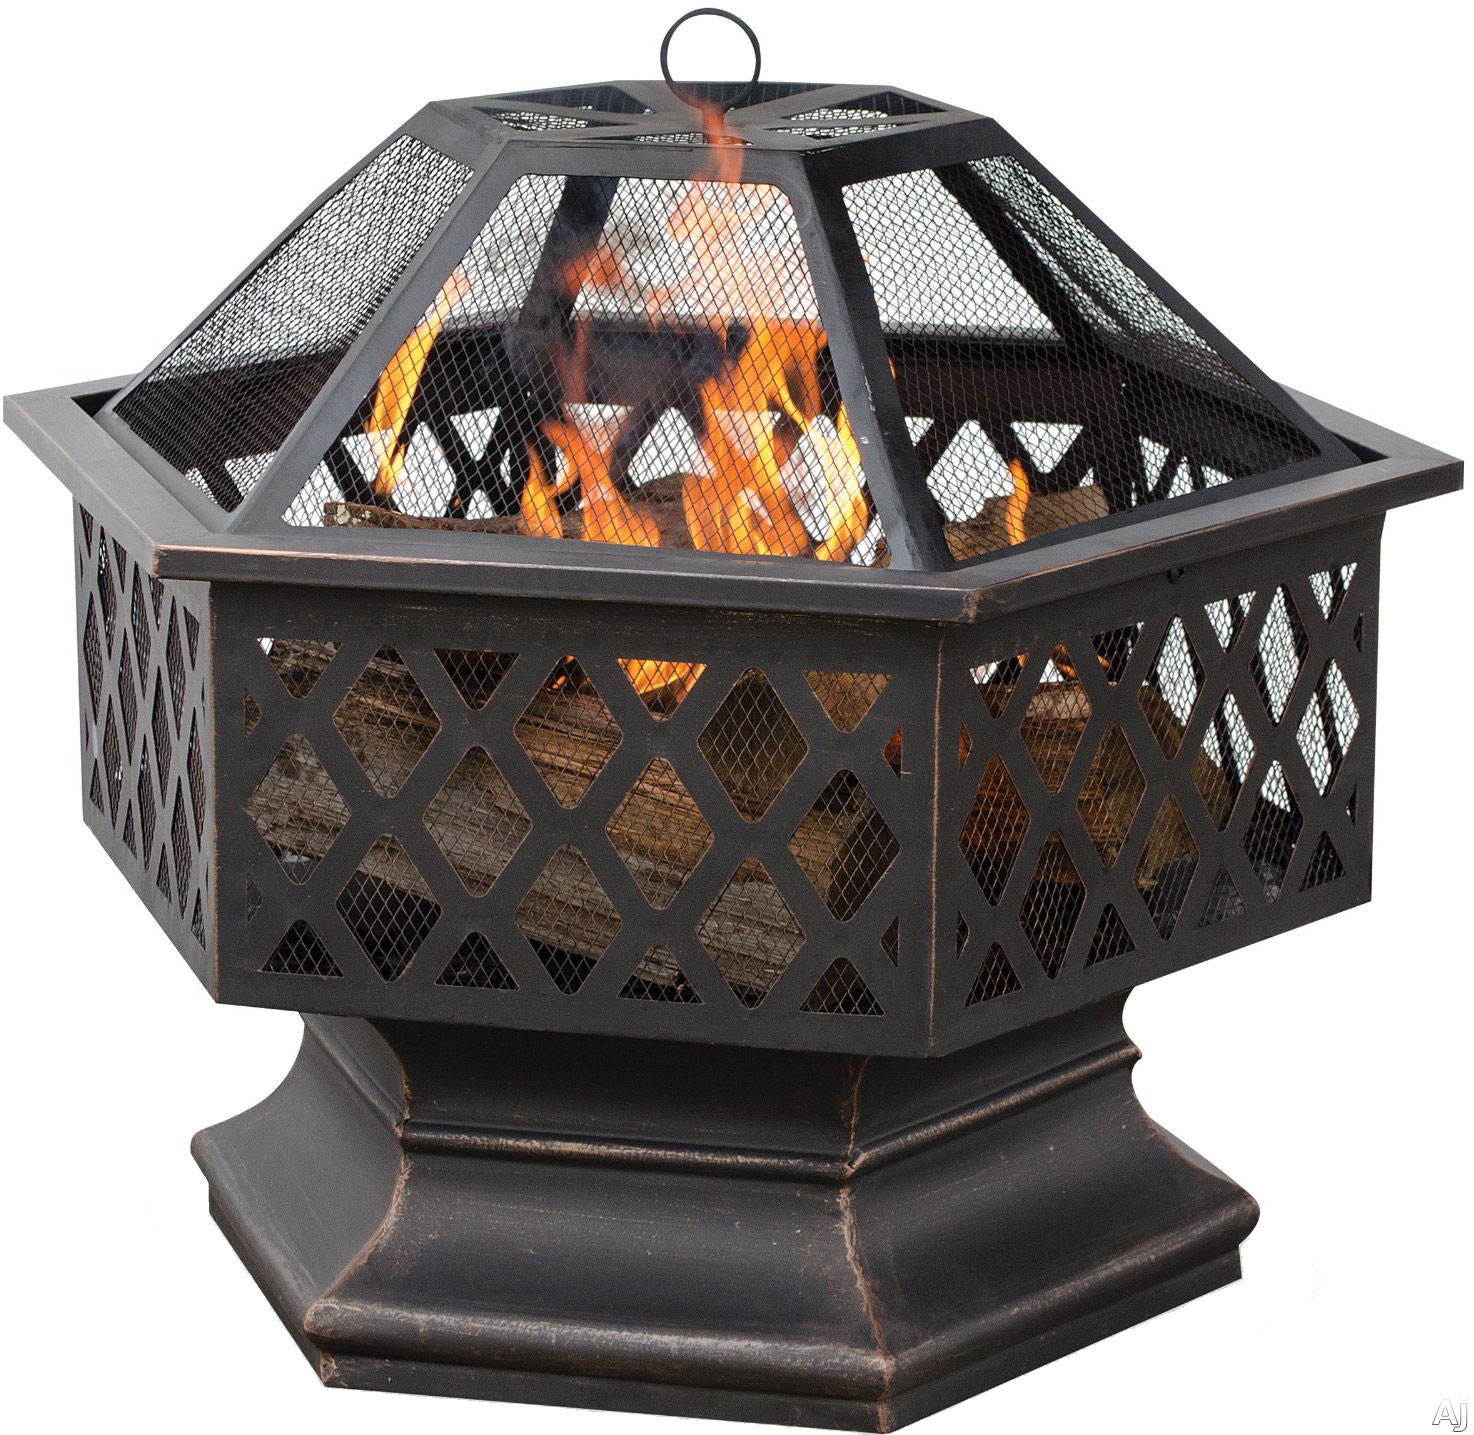 Blue Rhino WAD1377SP Hexagonal Outdoor Firebowl Wood Burning Fire Pit with Lattice Design in Oil Rubbed Bronze